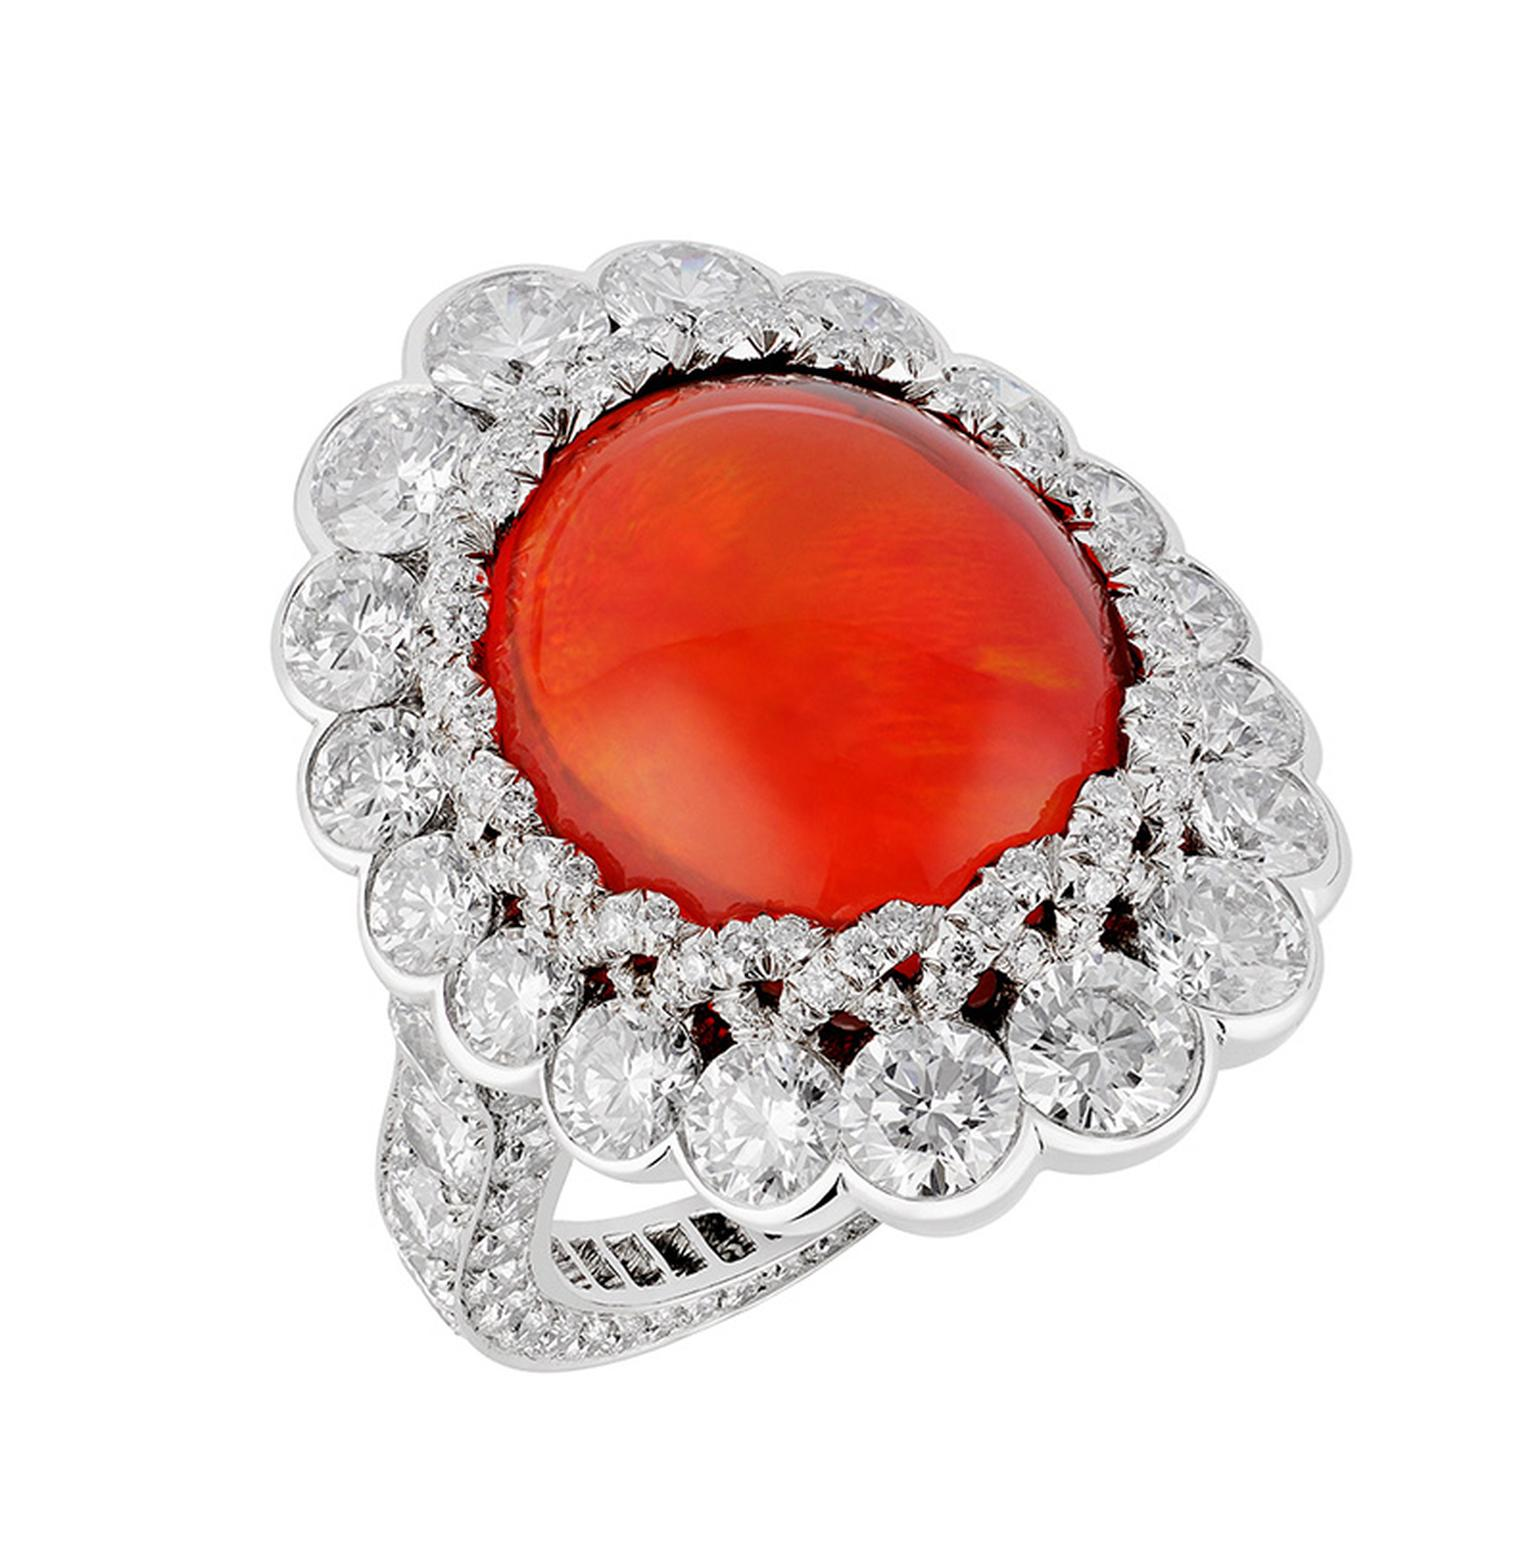 Faberge-Fire-Opal-Ring